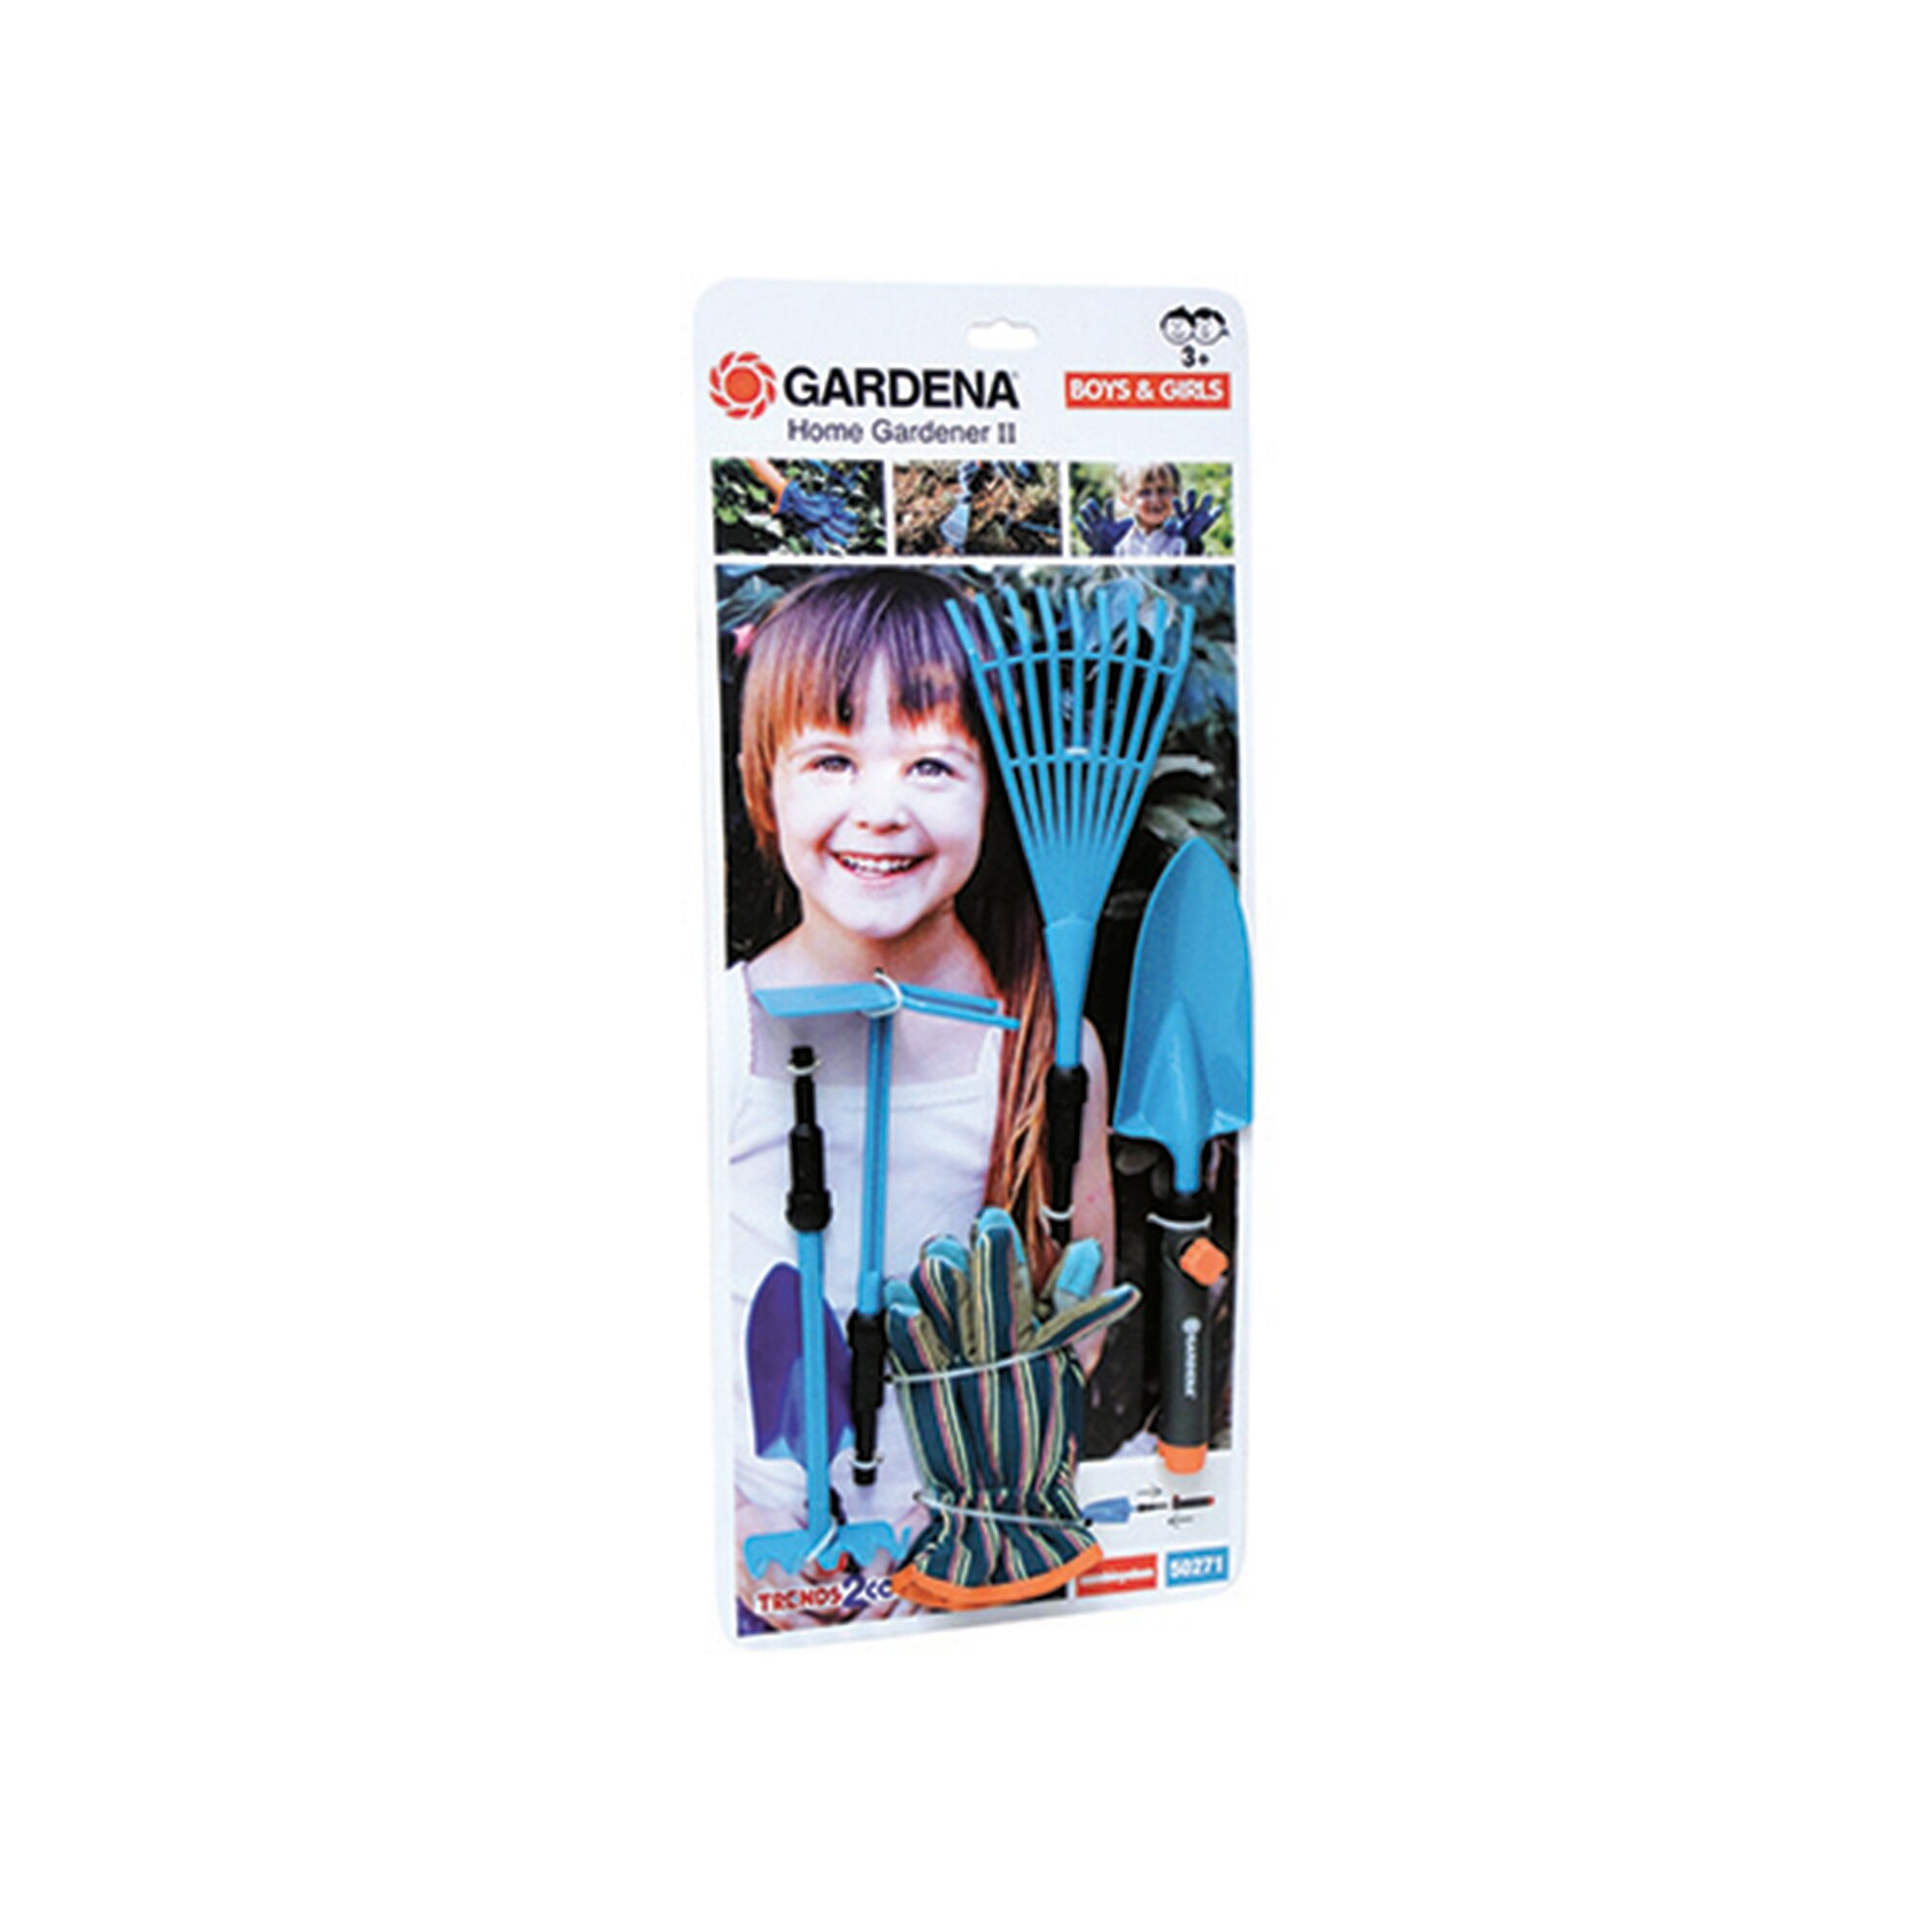 gardena-boys-girls-garten-kindergerate-set-gardena-home-gardener-ii